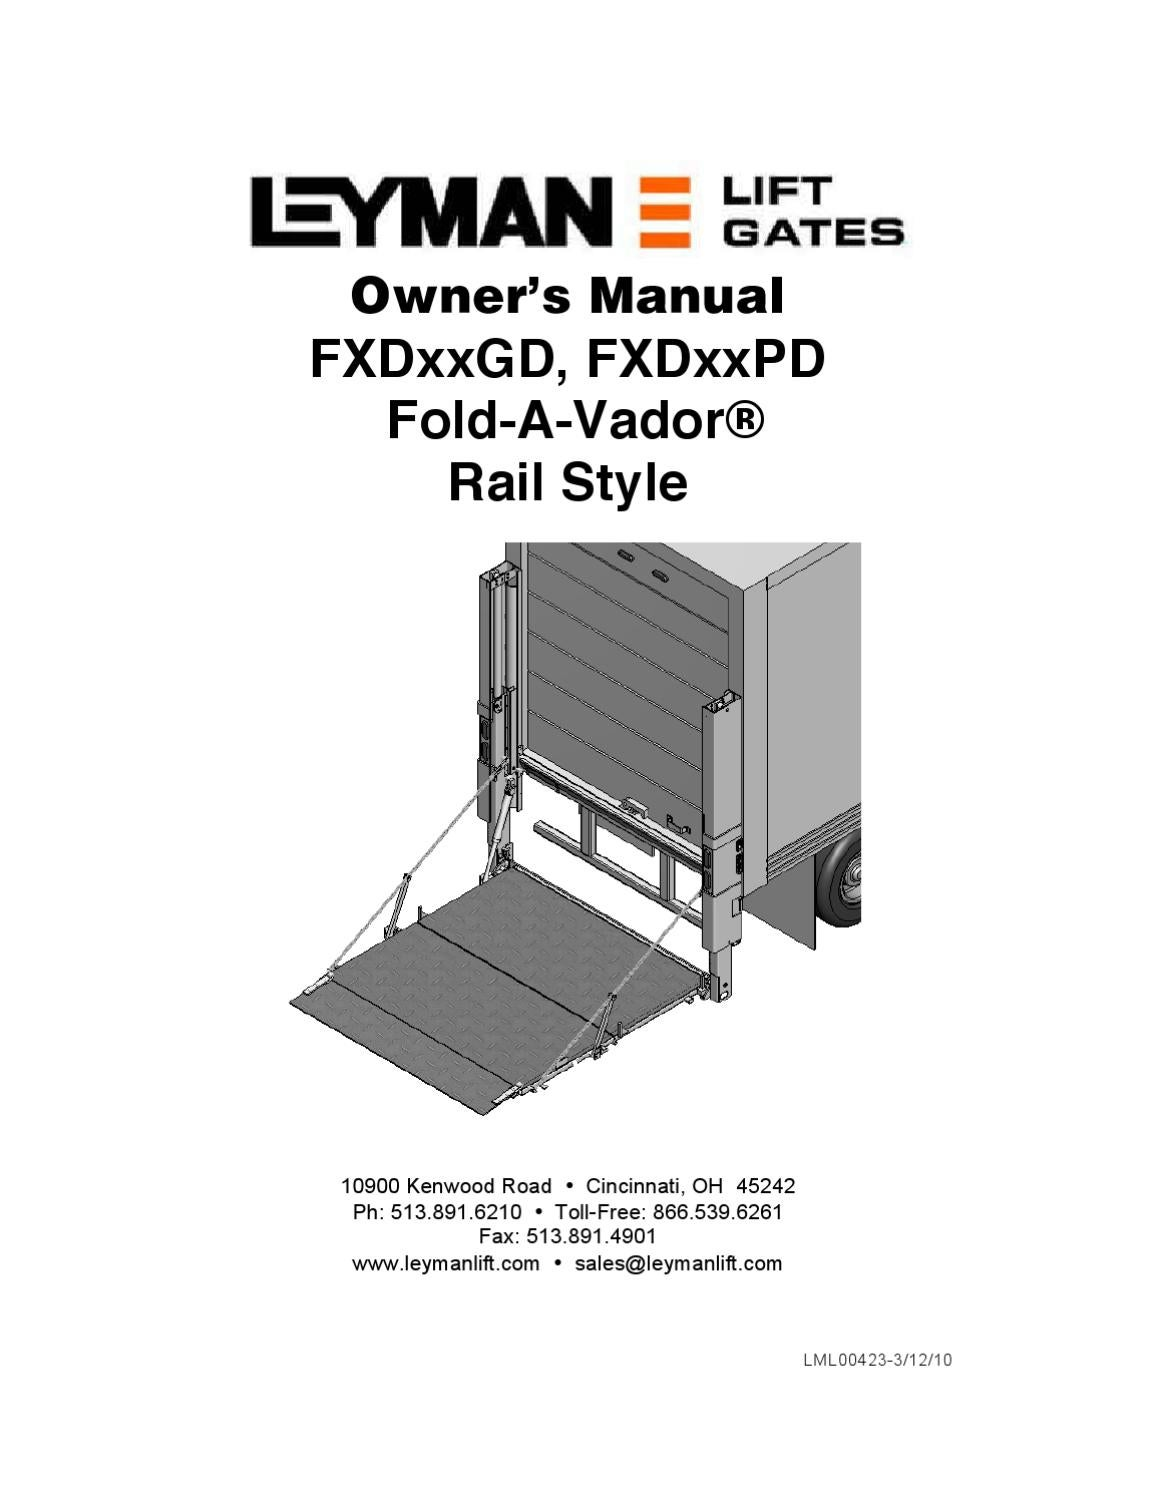 Maxon Bmra Cs Series Liftgate By The Parts Co Issuu 280252 Wiring Harness Diagram Leyman Fxd 6800